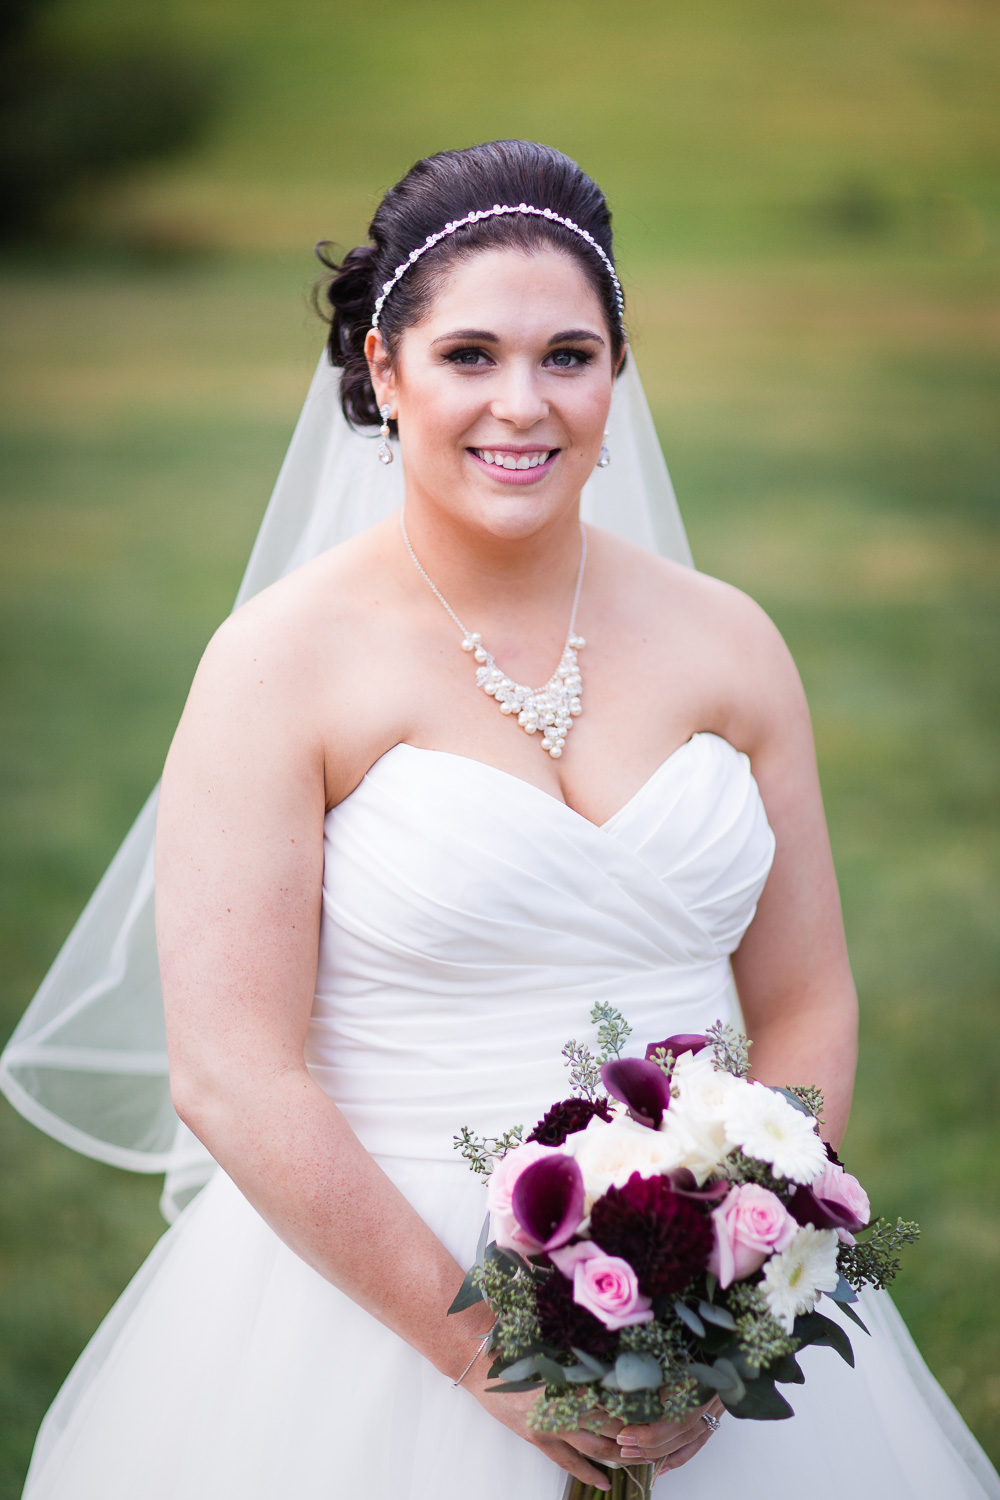 wild-rose-weddings-arlington-chris-harth-photography-235.jpg